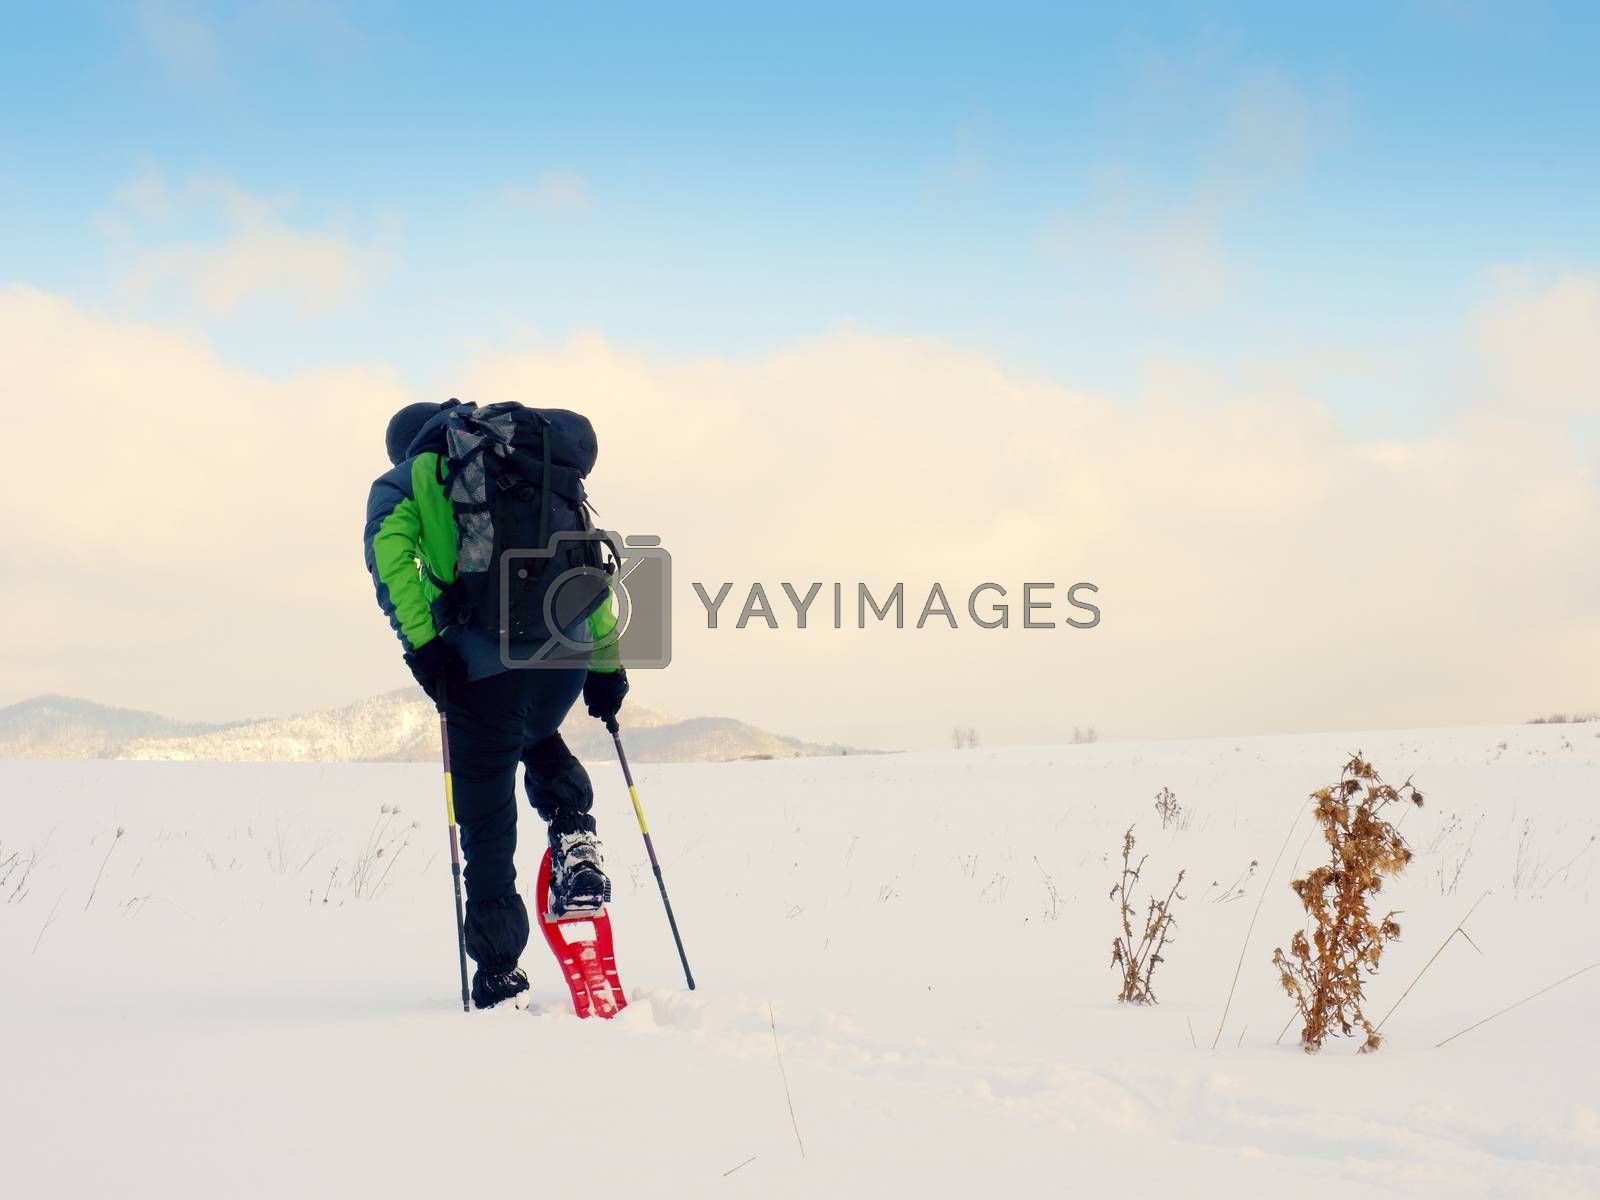 Man cleaning snowshoe. Hiker in green gray winter jacket and black trekking trousers walk in snowy filed. Snowshoeing in powder snow. Cloudy winter day, gentle wind brings small snow flakes